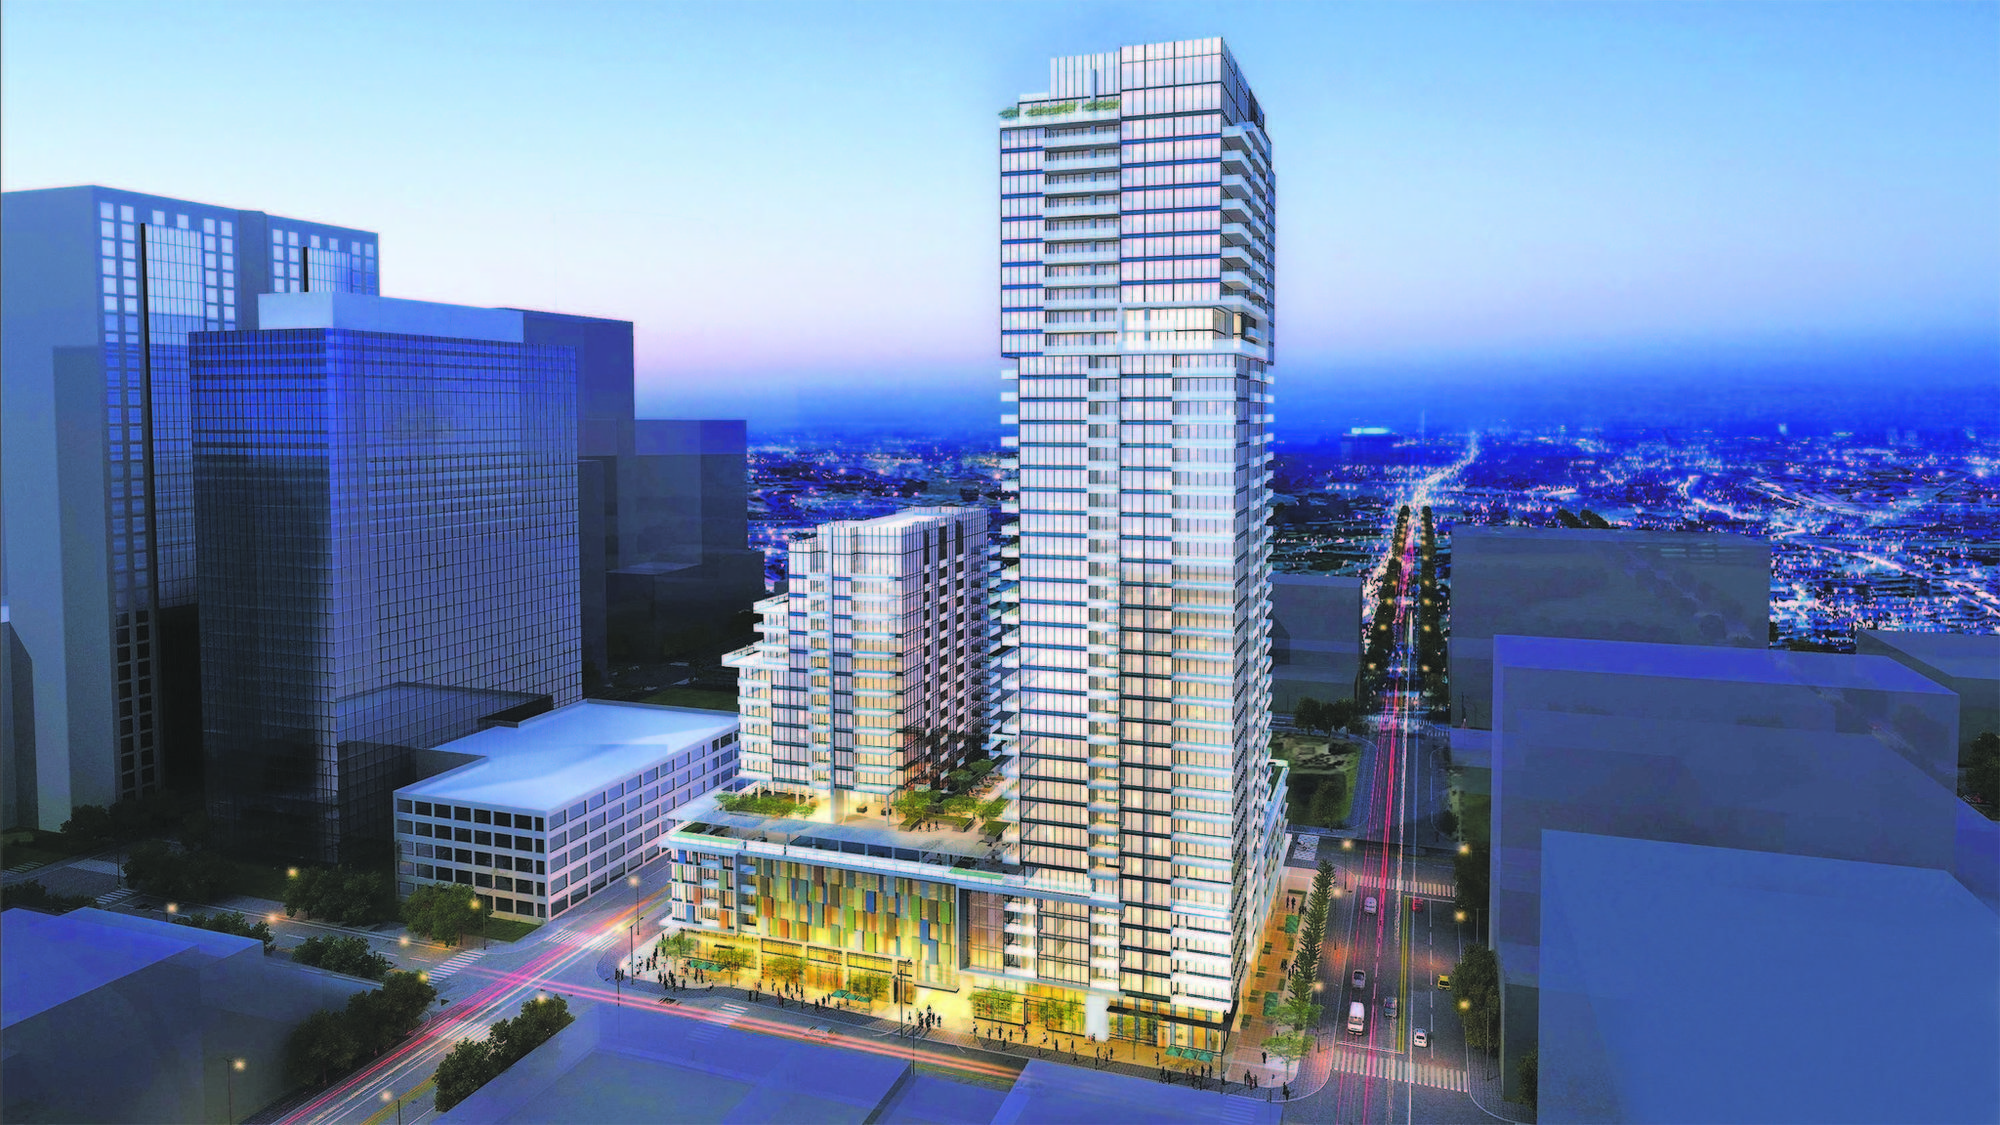 Newest san diego residential towers rival city 39 s tallest buildings the san diego union tribune - Apartment buildings san diego ...